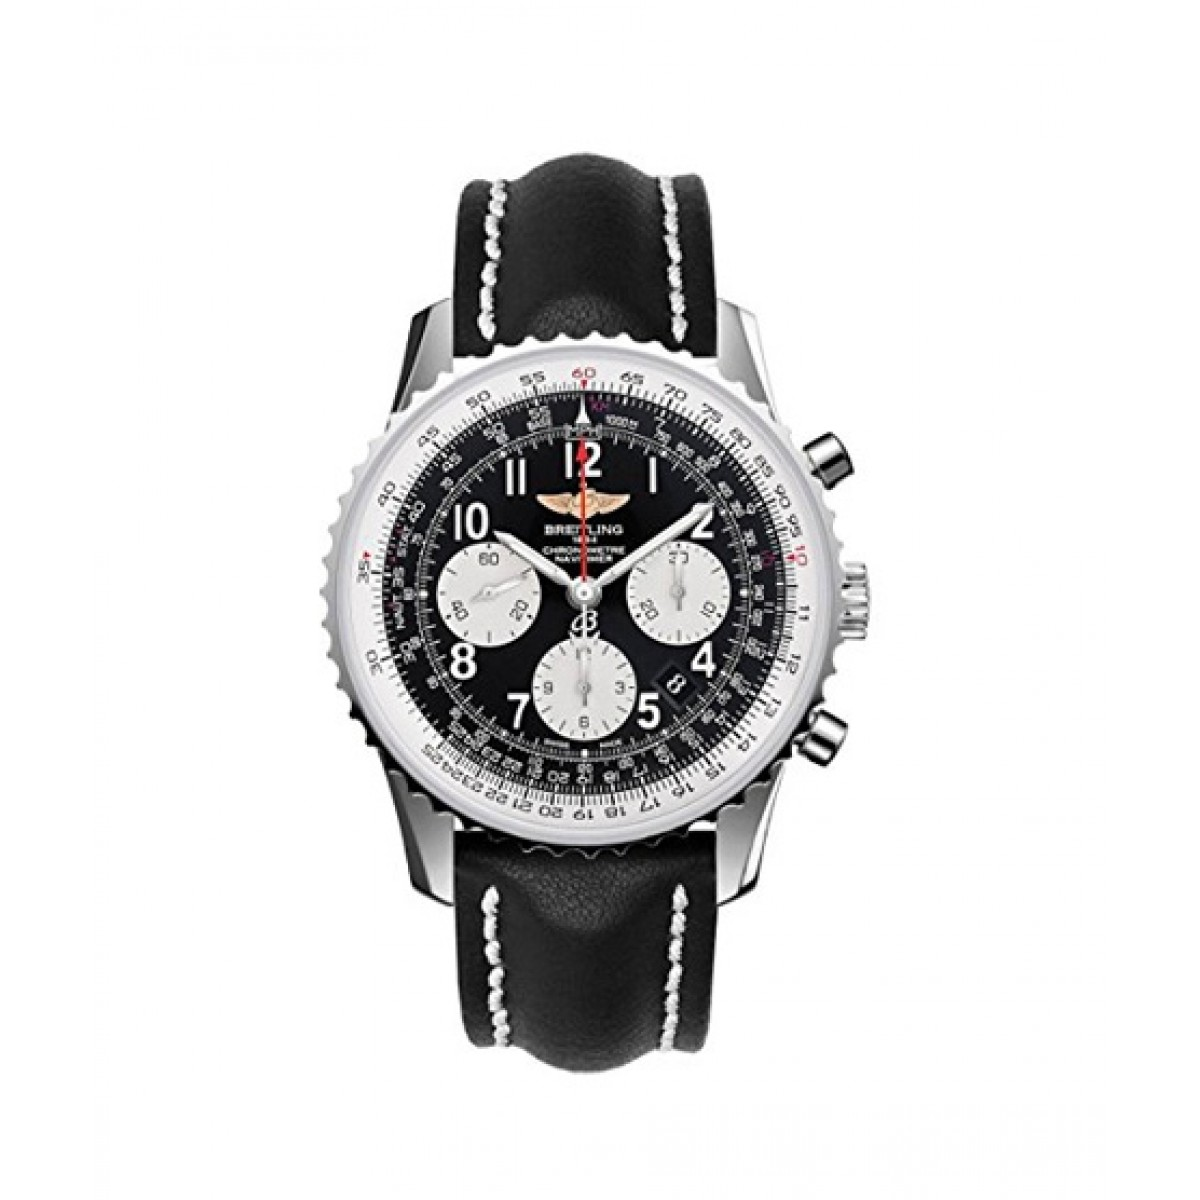 Breitling Navitimer 01 Men S Watch Black Ab012012 Bb02 436x